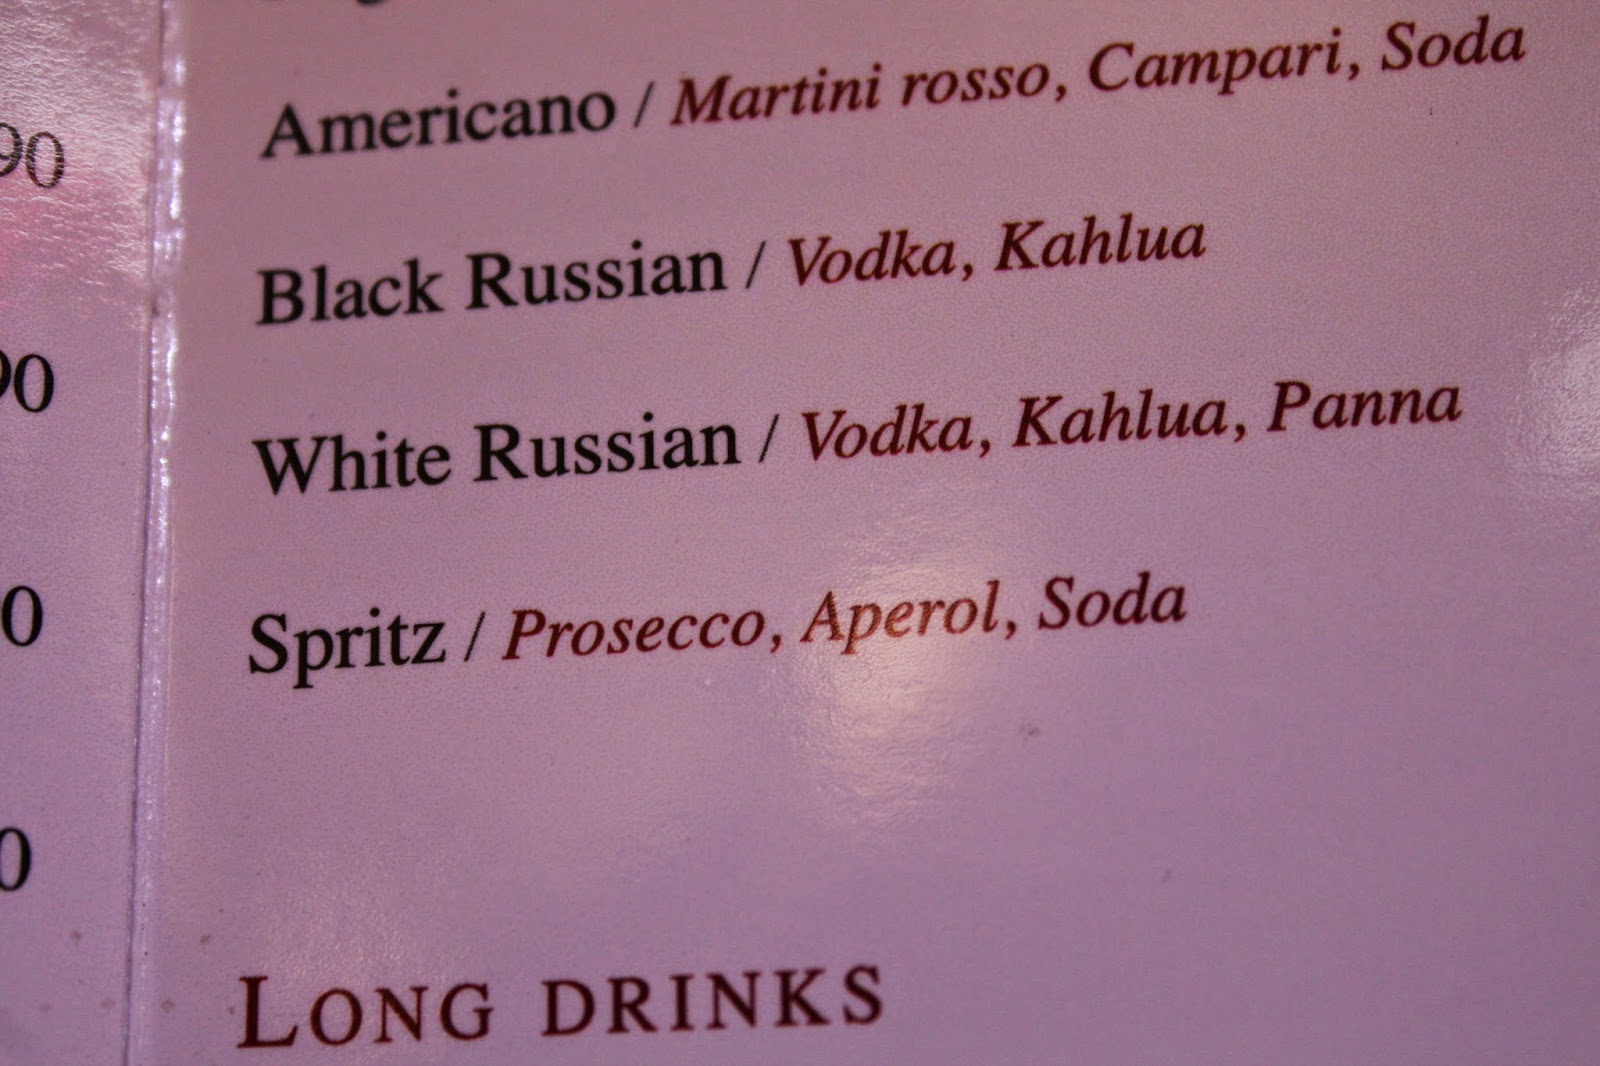 Italian menu listing for Spritz